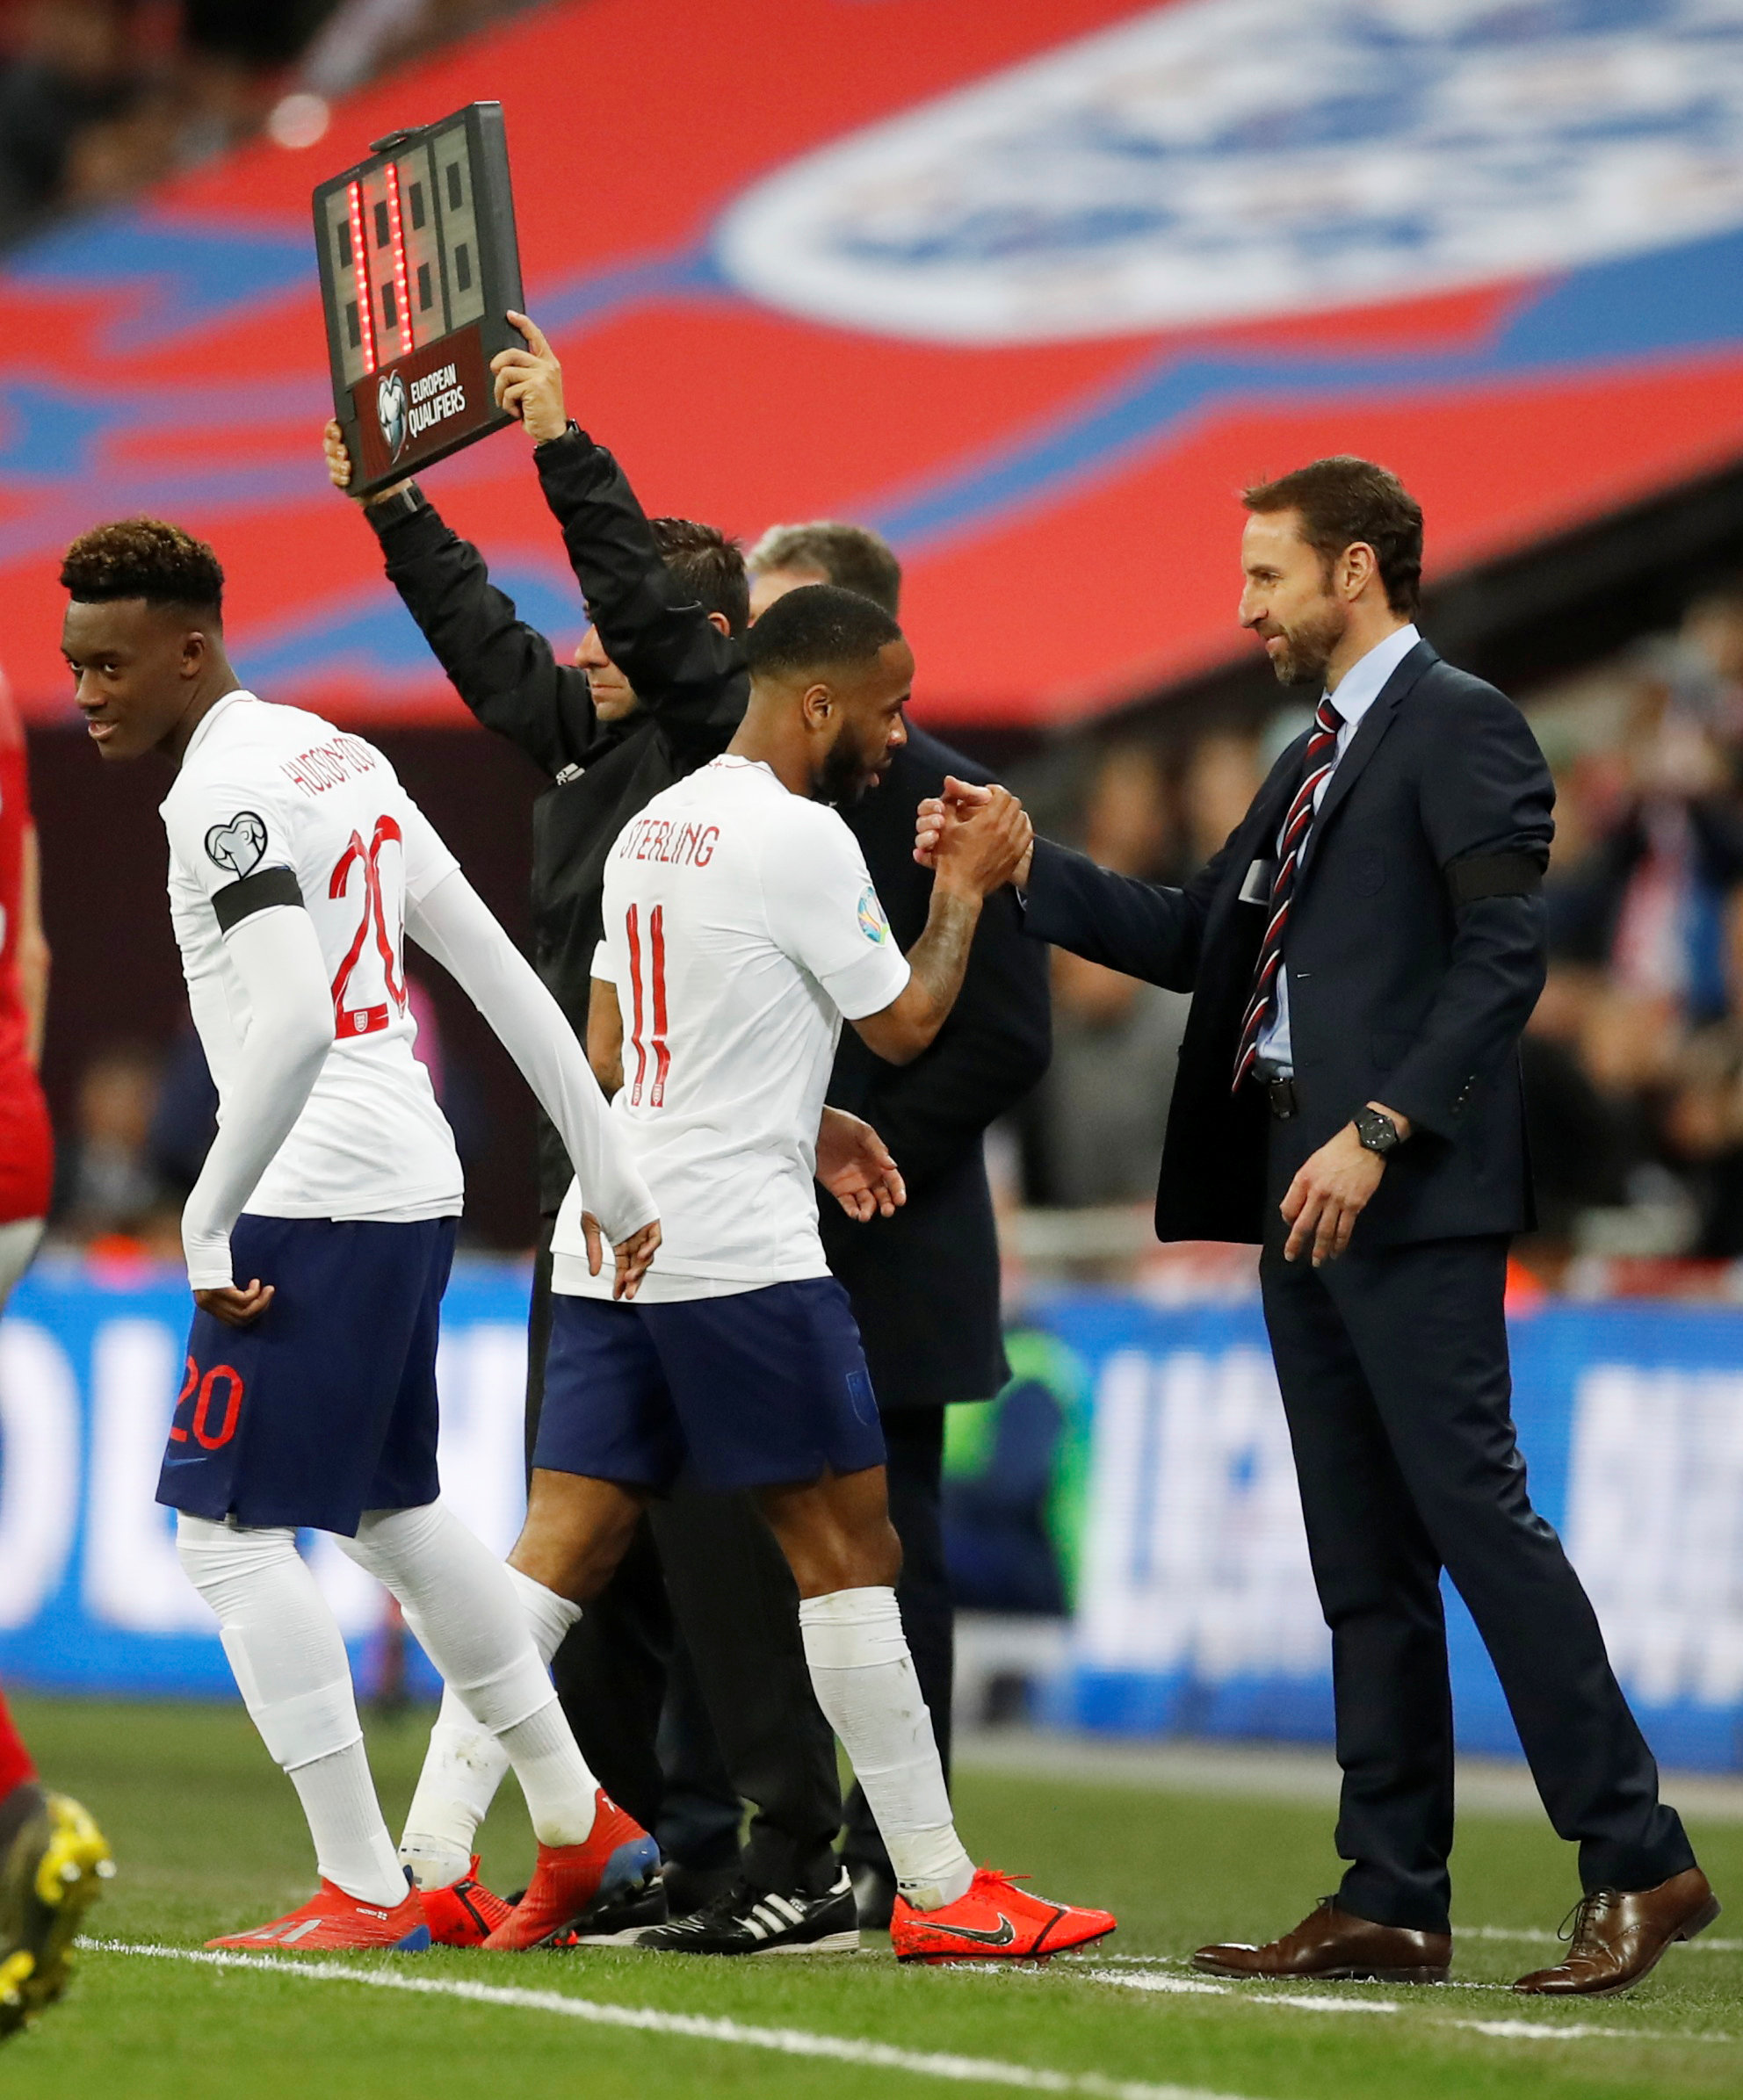 Sterling can be Hudson-Odoi's role model: Lampard